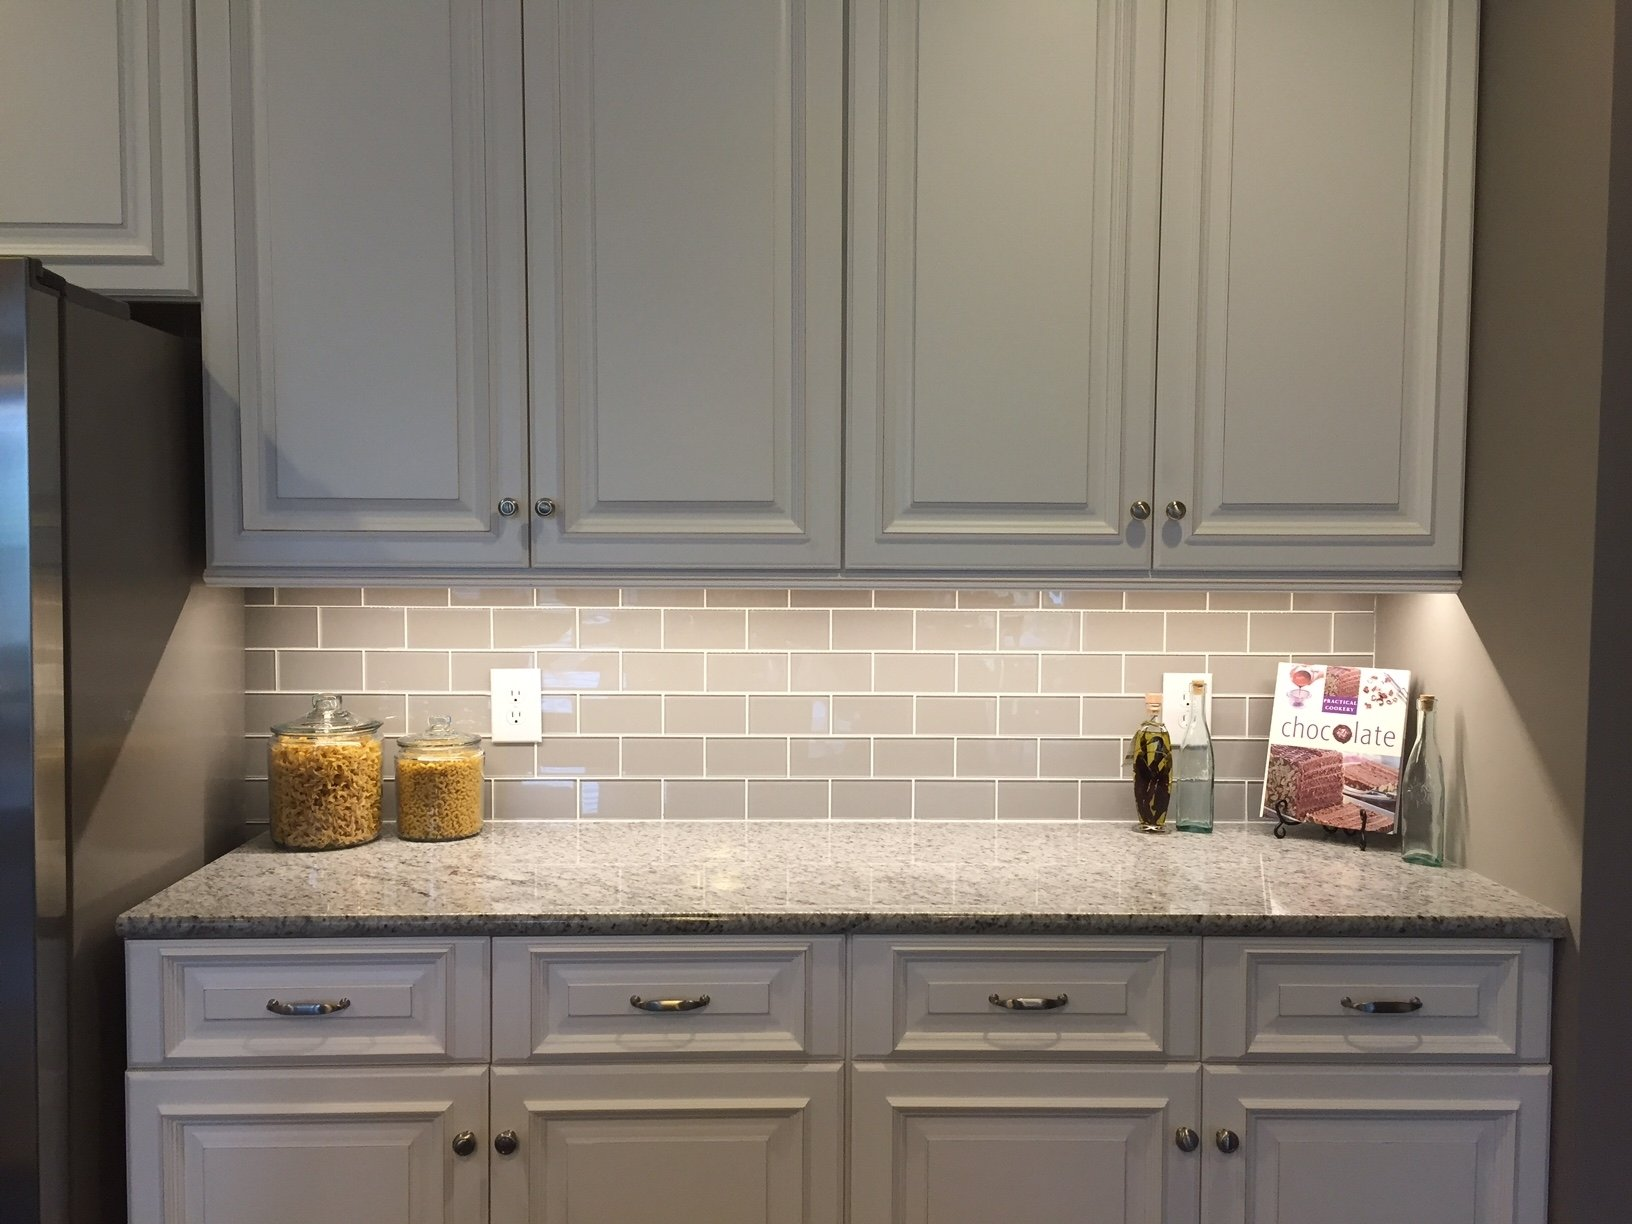 10 Pretty Ideas For Backsplash In Kitchen decorating glass kitchen backsplash ideas backsplash ideas for your 2021